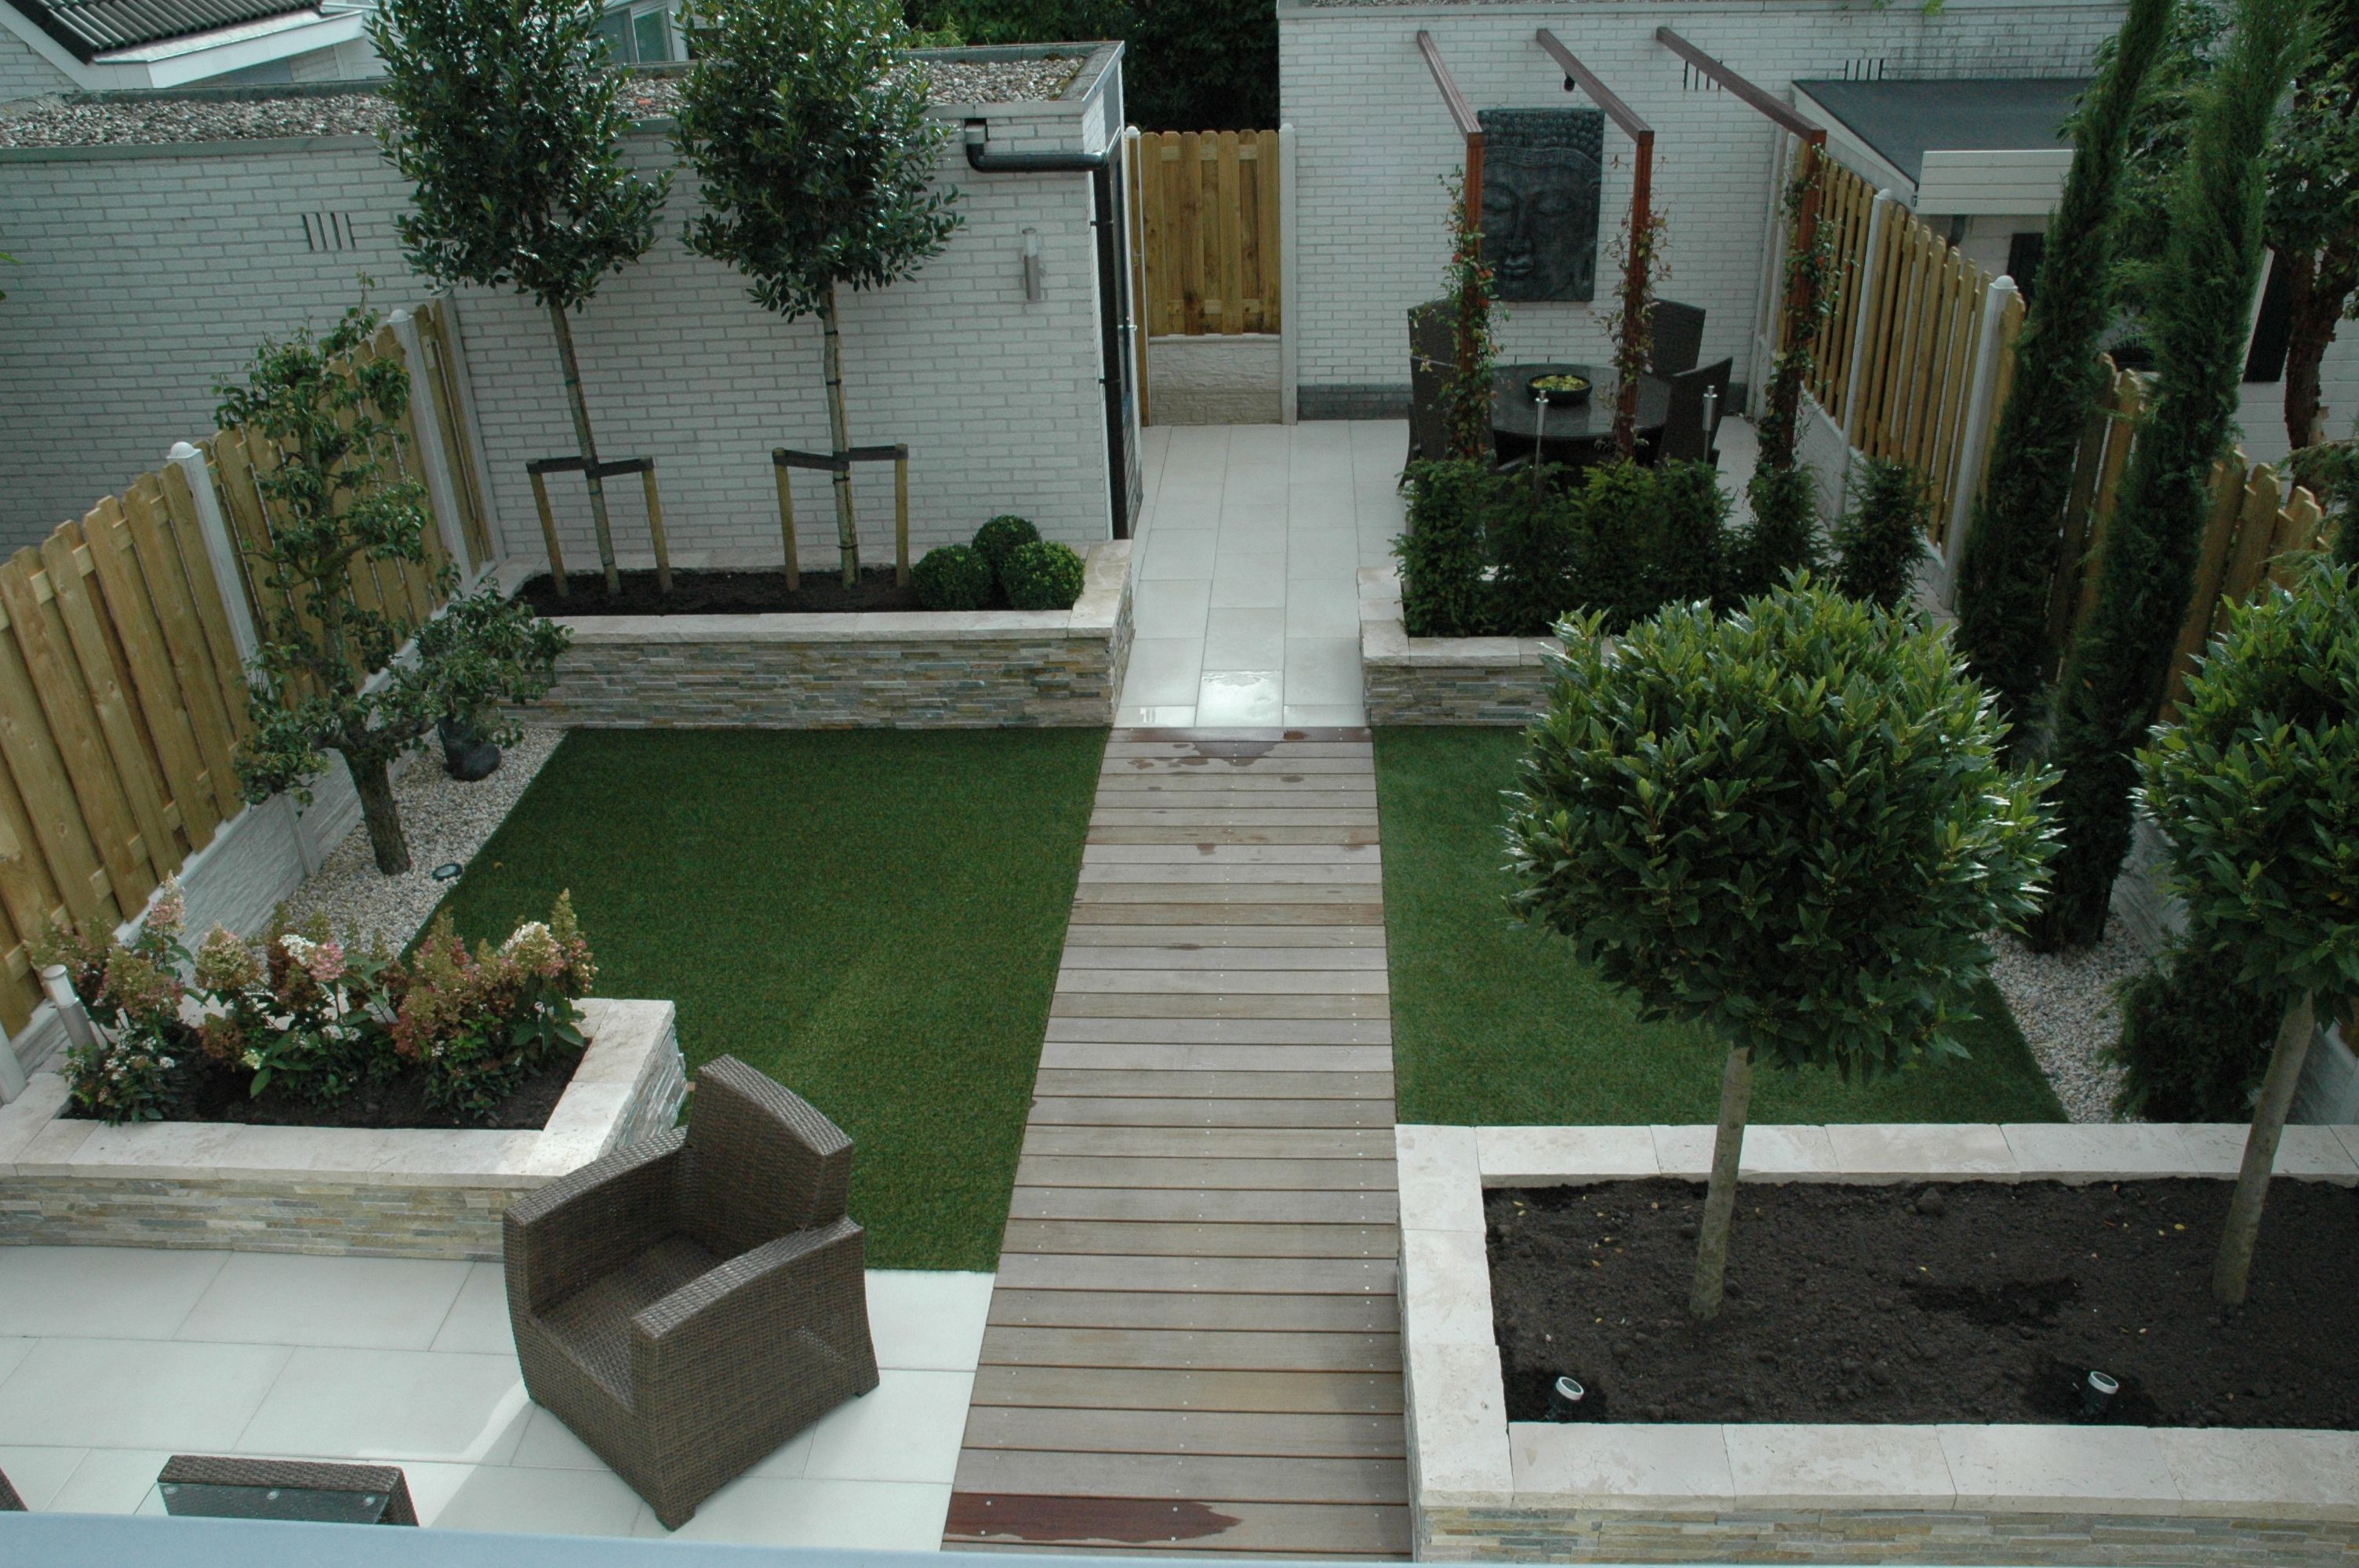 Garden Design Artificial Grass get effortless lush, neatly cropped grass all year round with